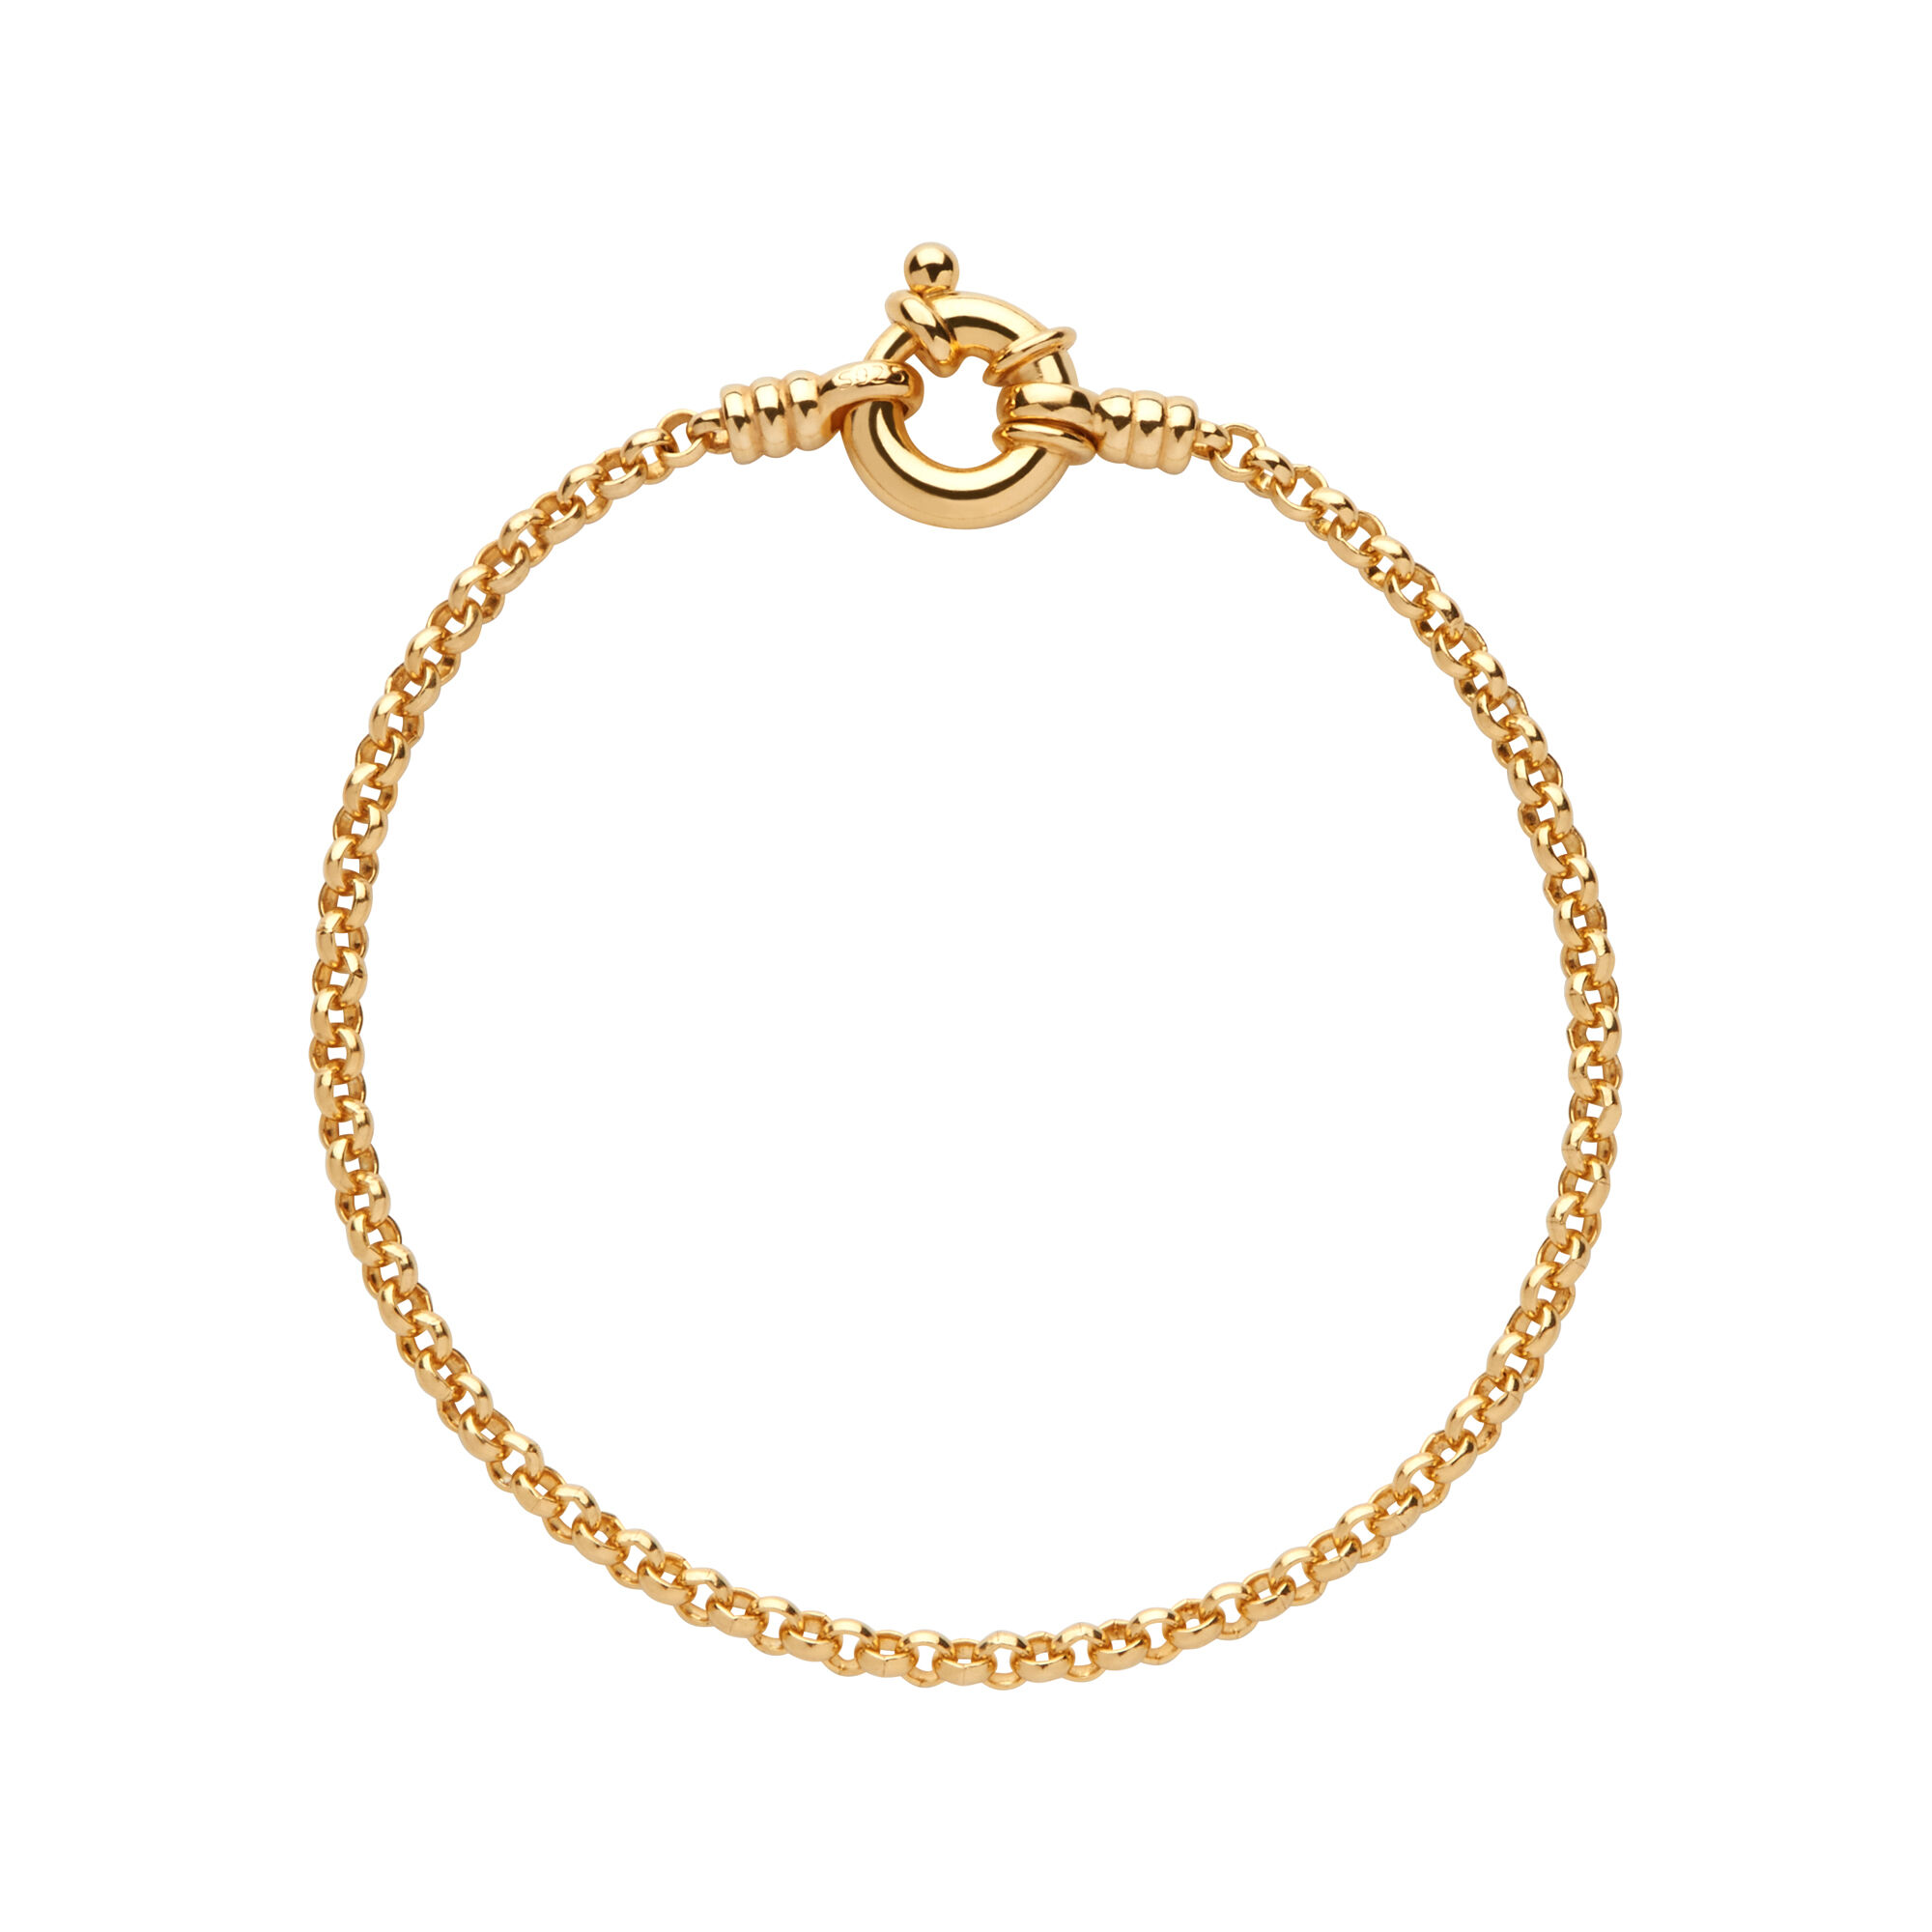 necklace shira by opera shop dark and silver diamonds brown shiragiusta anklet gold clasps oval with chain